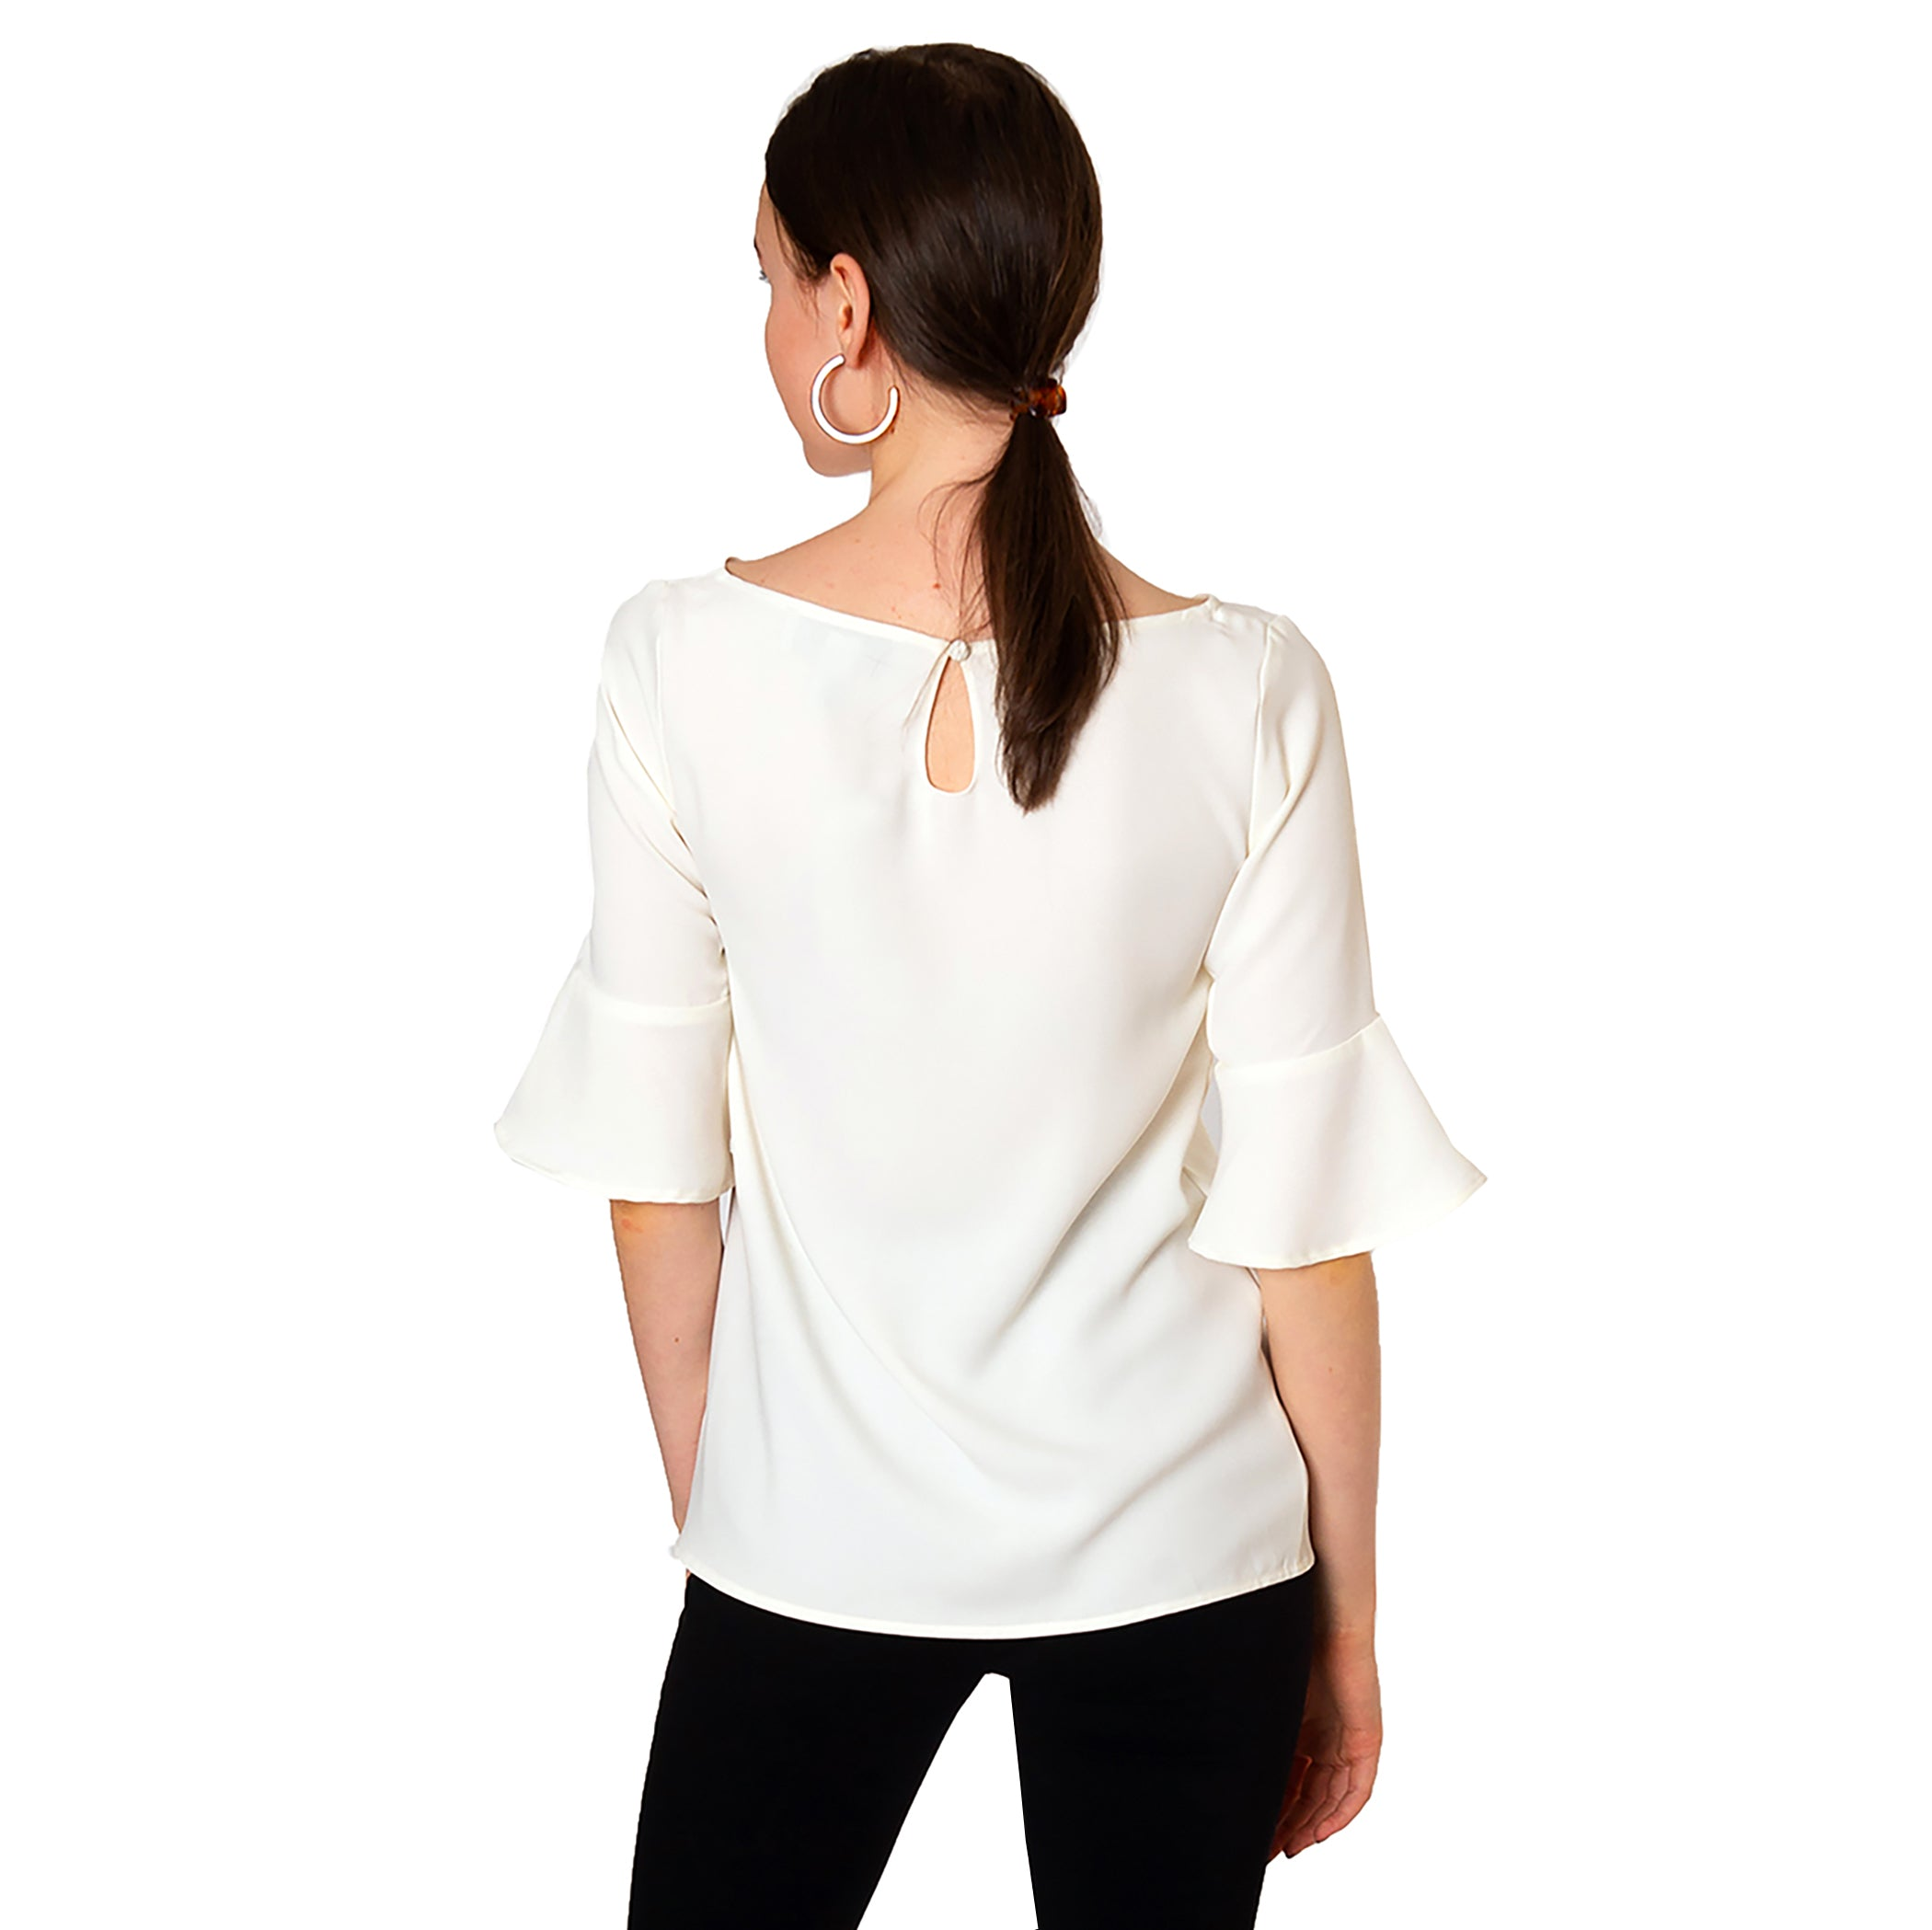 Caroline Blouse in White - Elizabeth Ackerman New York